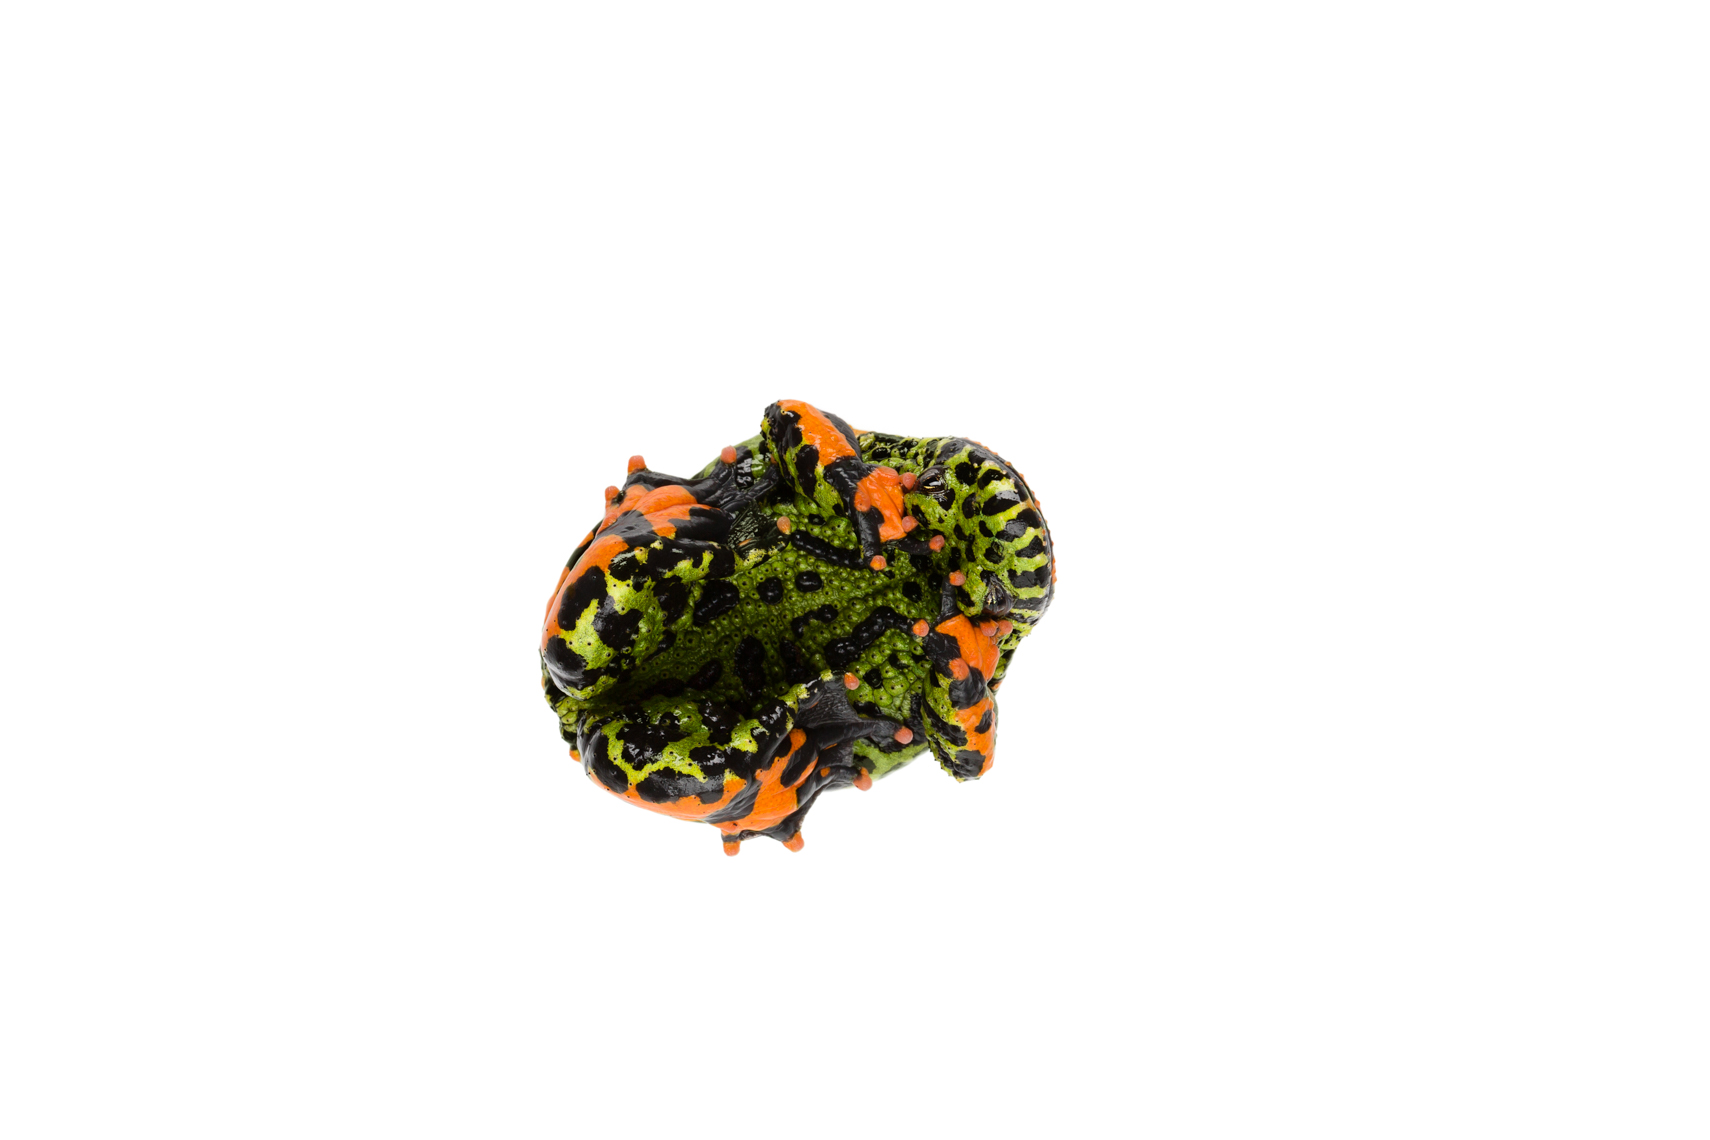 Defensive Fire-Bellied Toad